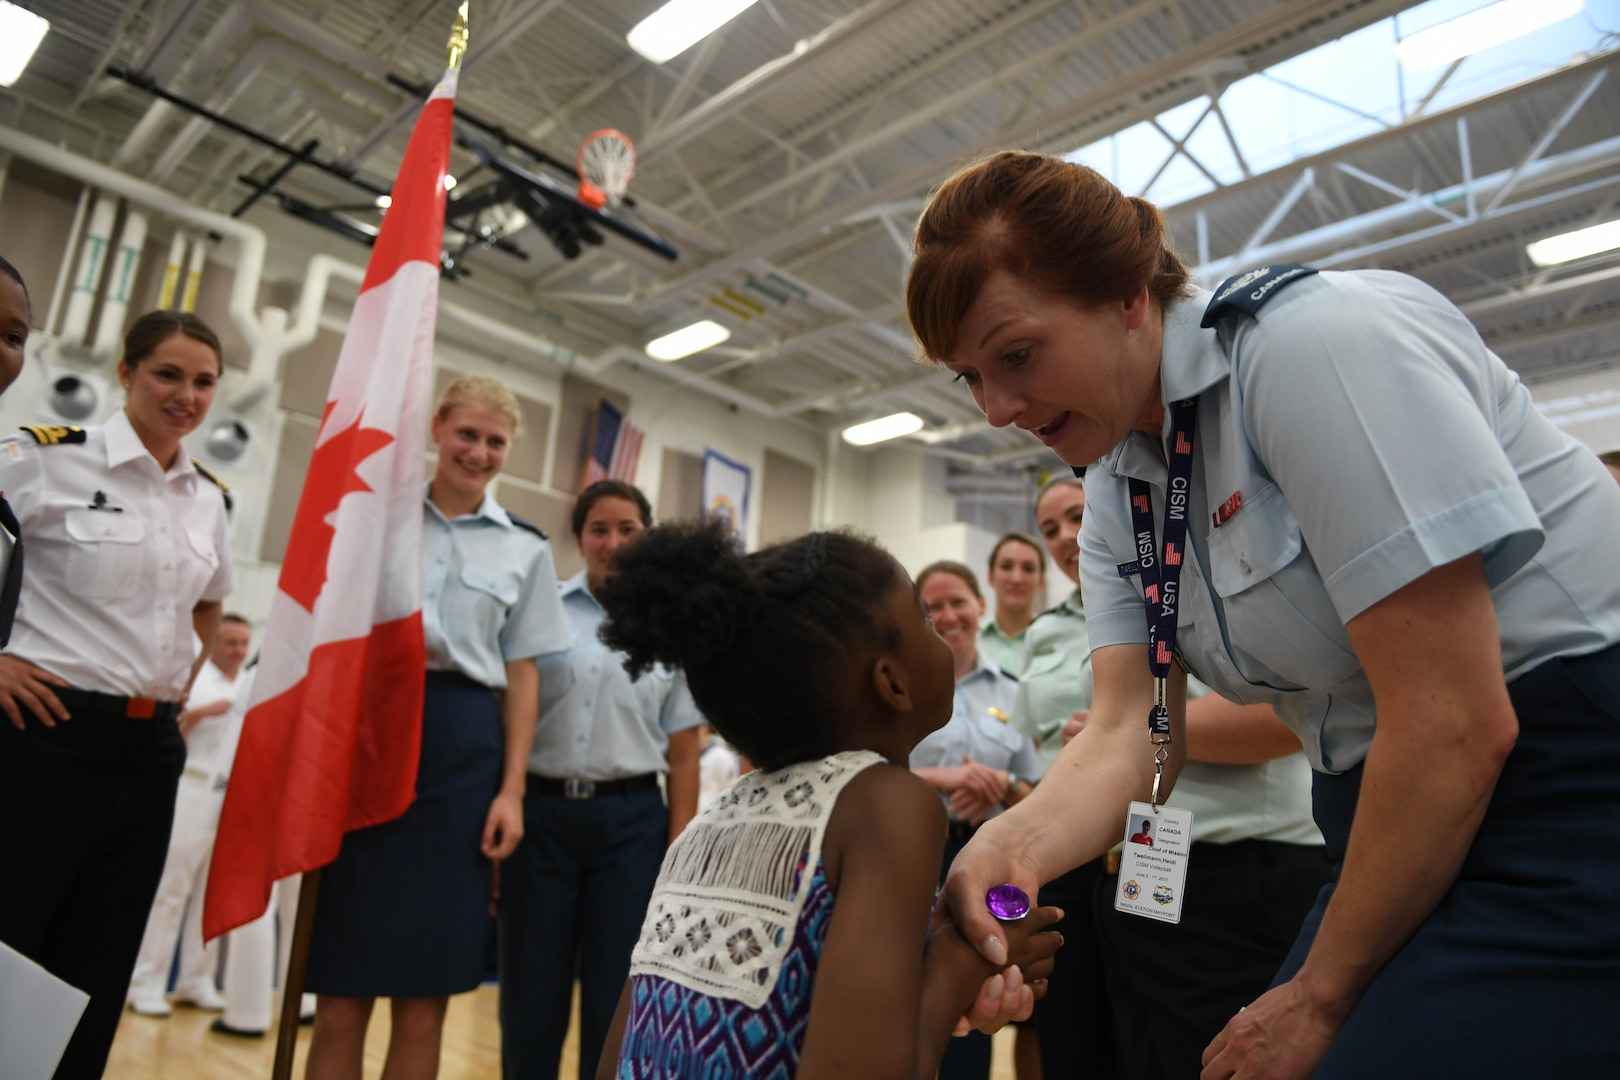 170603-N-UK306-201 JACKSONVILLE, Fla. (June 3, 2017)  Compeititors take part in the opening ceremony of the 18th Conseil International du Sport Militaire (CISM) World Military Women's Volleyball Championship at Naval Station Mayport.  Teams from the United States, Canada, China, Germany and The Netherlands will compete June 4-9, while promoting peace activities and solidarity among athletes. (U.S. Navy photo by Mass Communication Specialist 2nd Class Timothy Schumaker/Released)